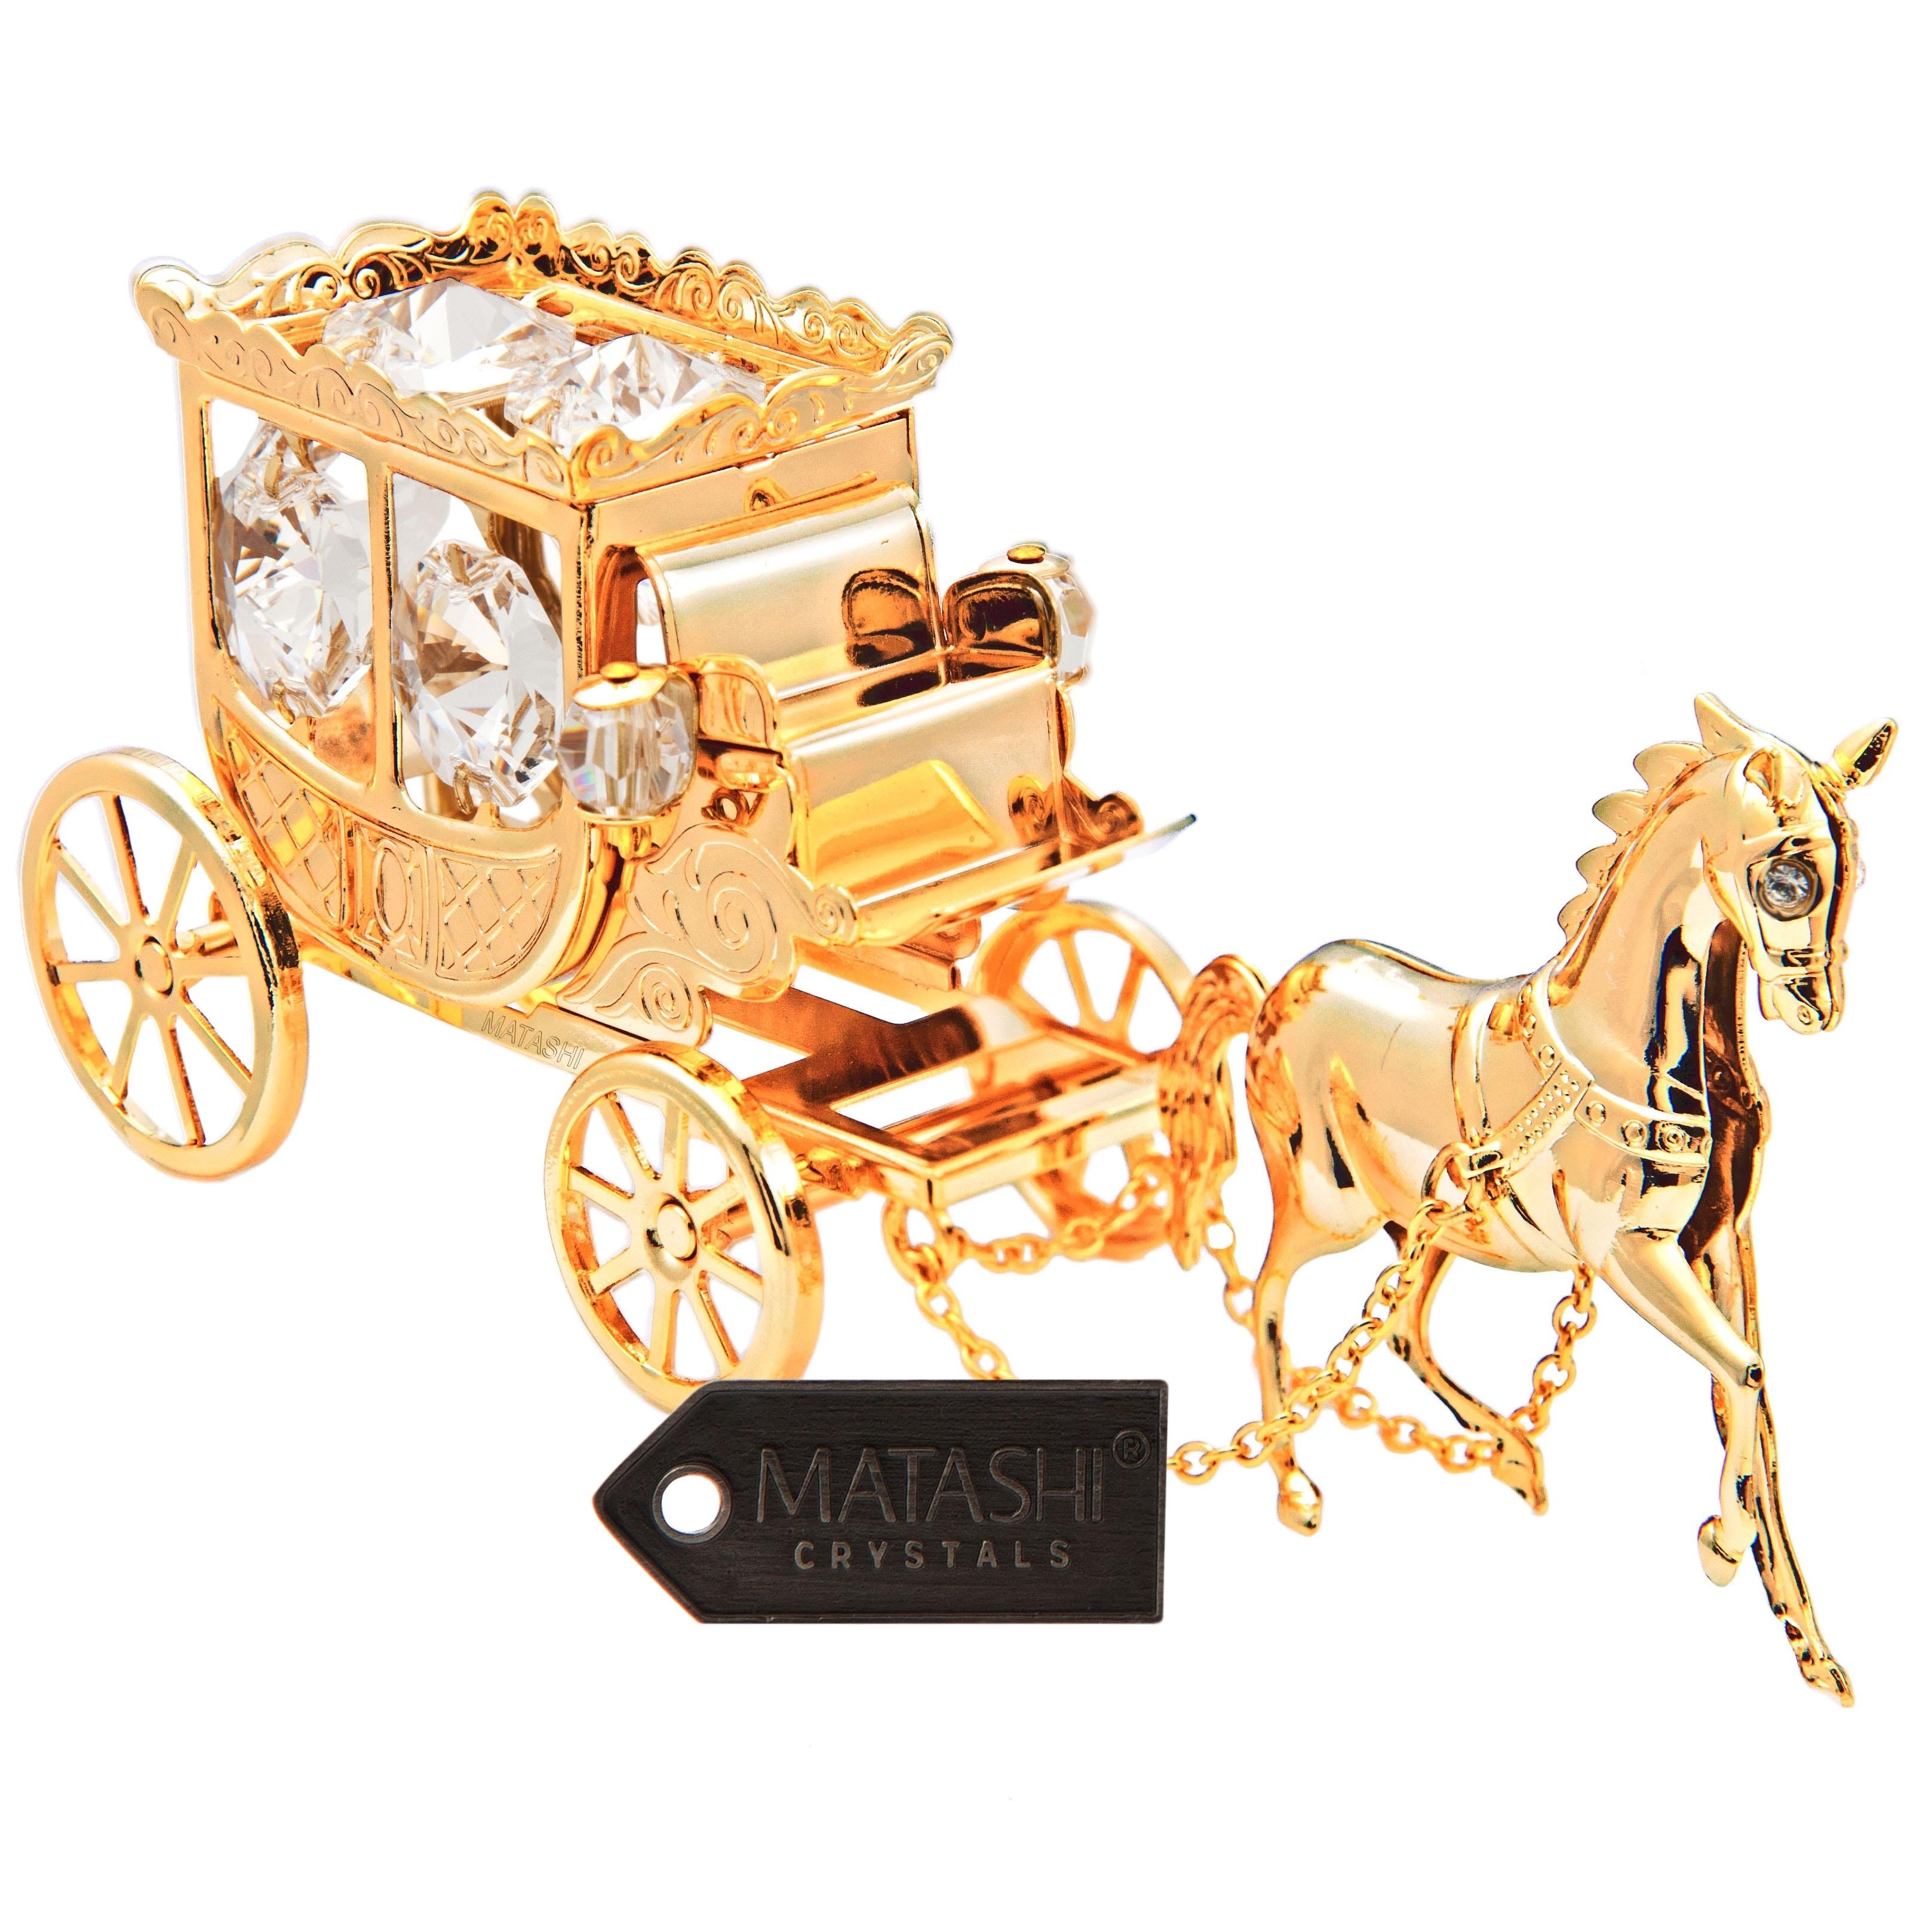 24k Goldplated Highly Polished Horse Drawn Carriage Ornam...